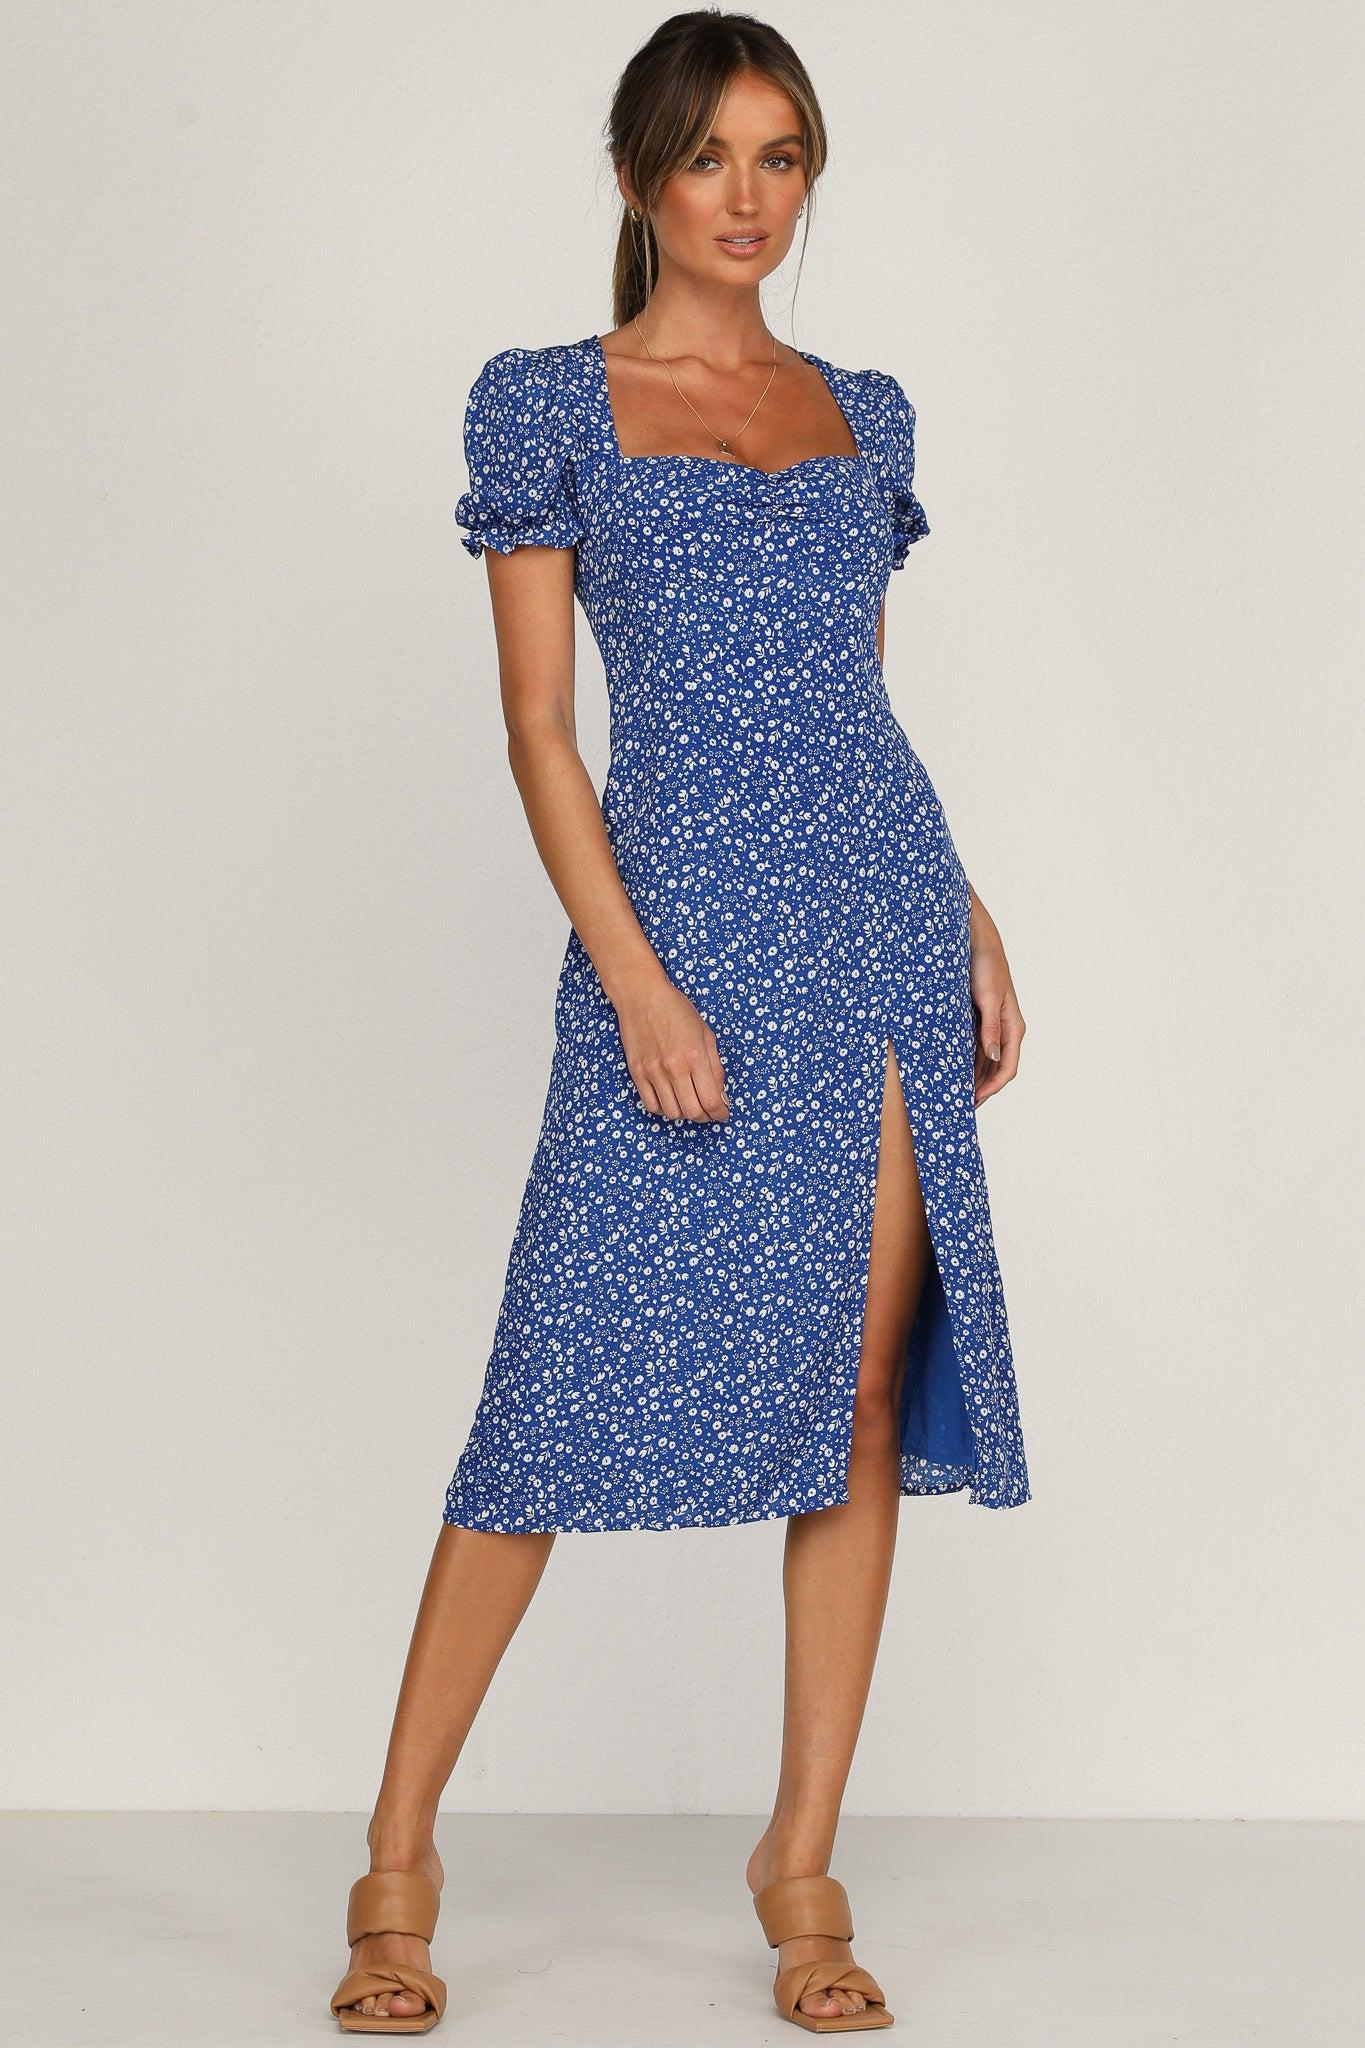 Crossed Signals Dress (Blue Floral)